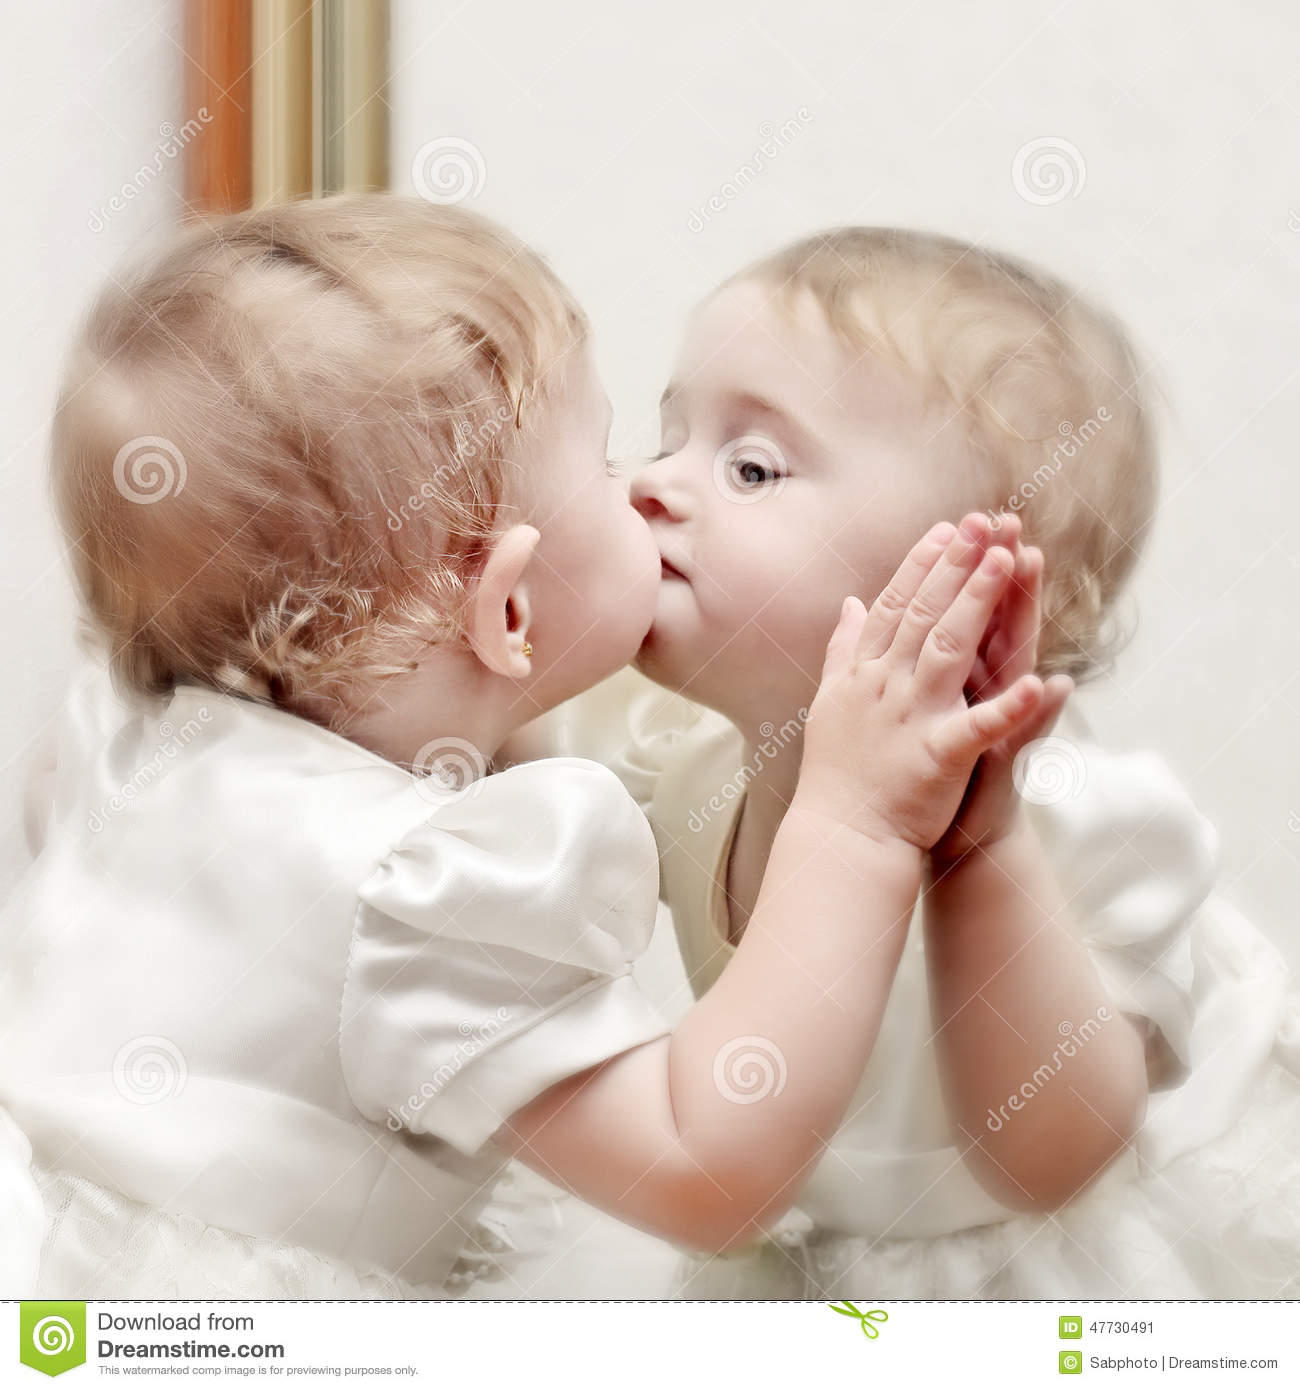 Baby kissing a mirror stock photo image 47730491 for Mirror kisses